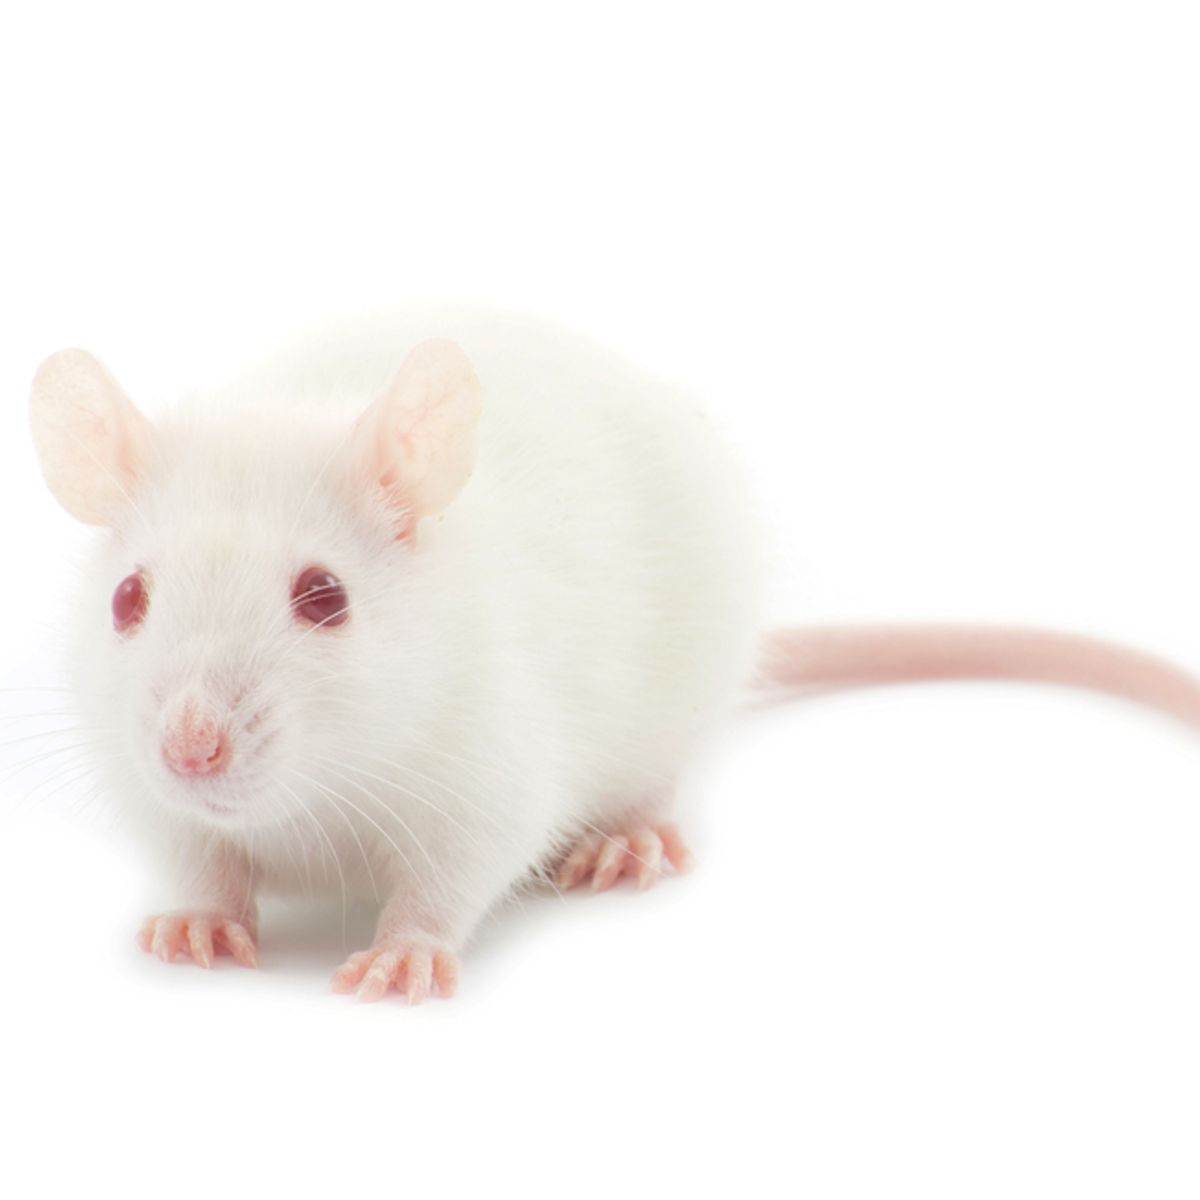 Scientists implant false memories in mouse's brain